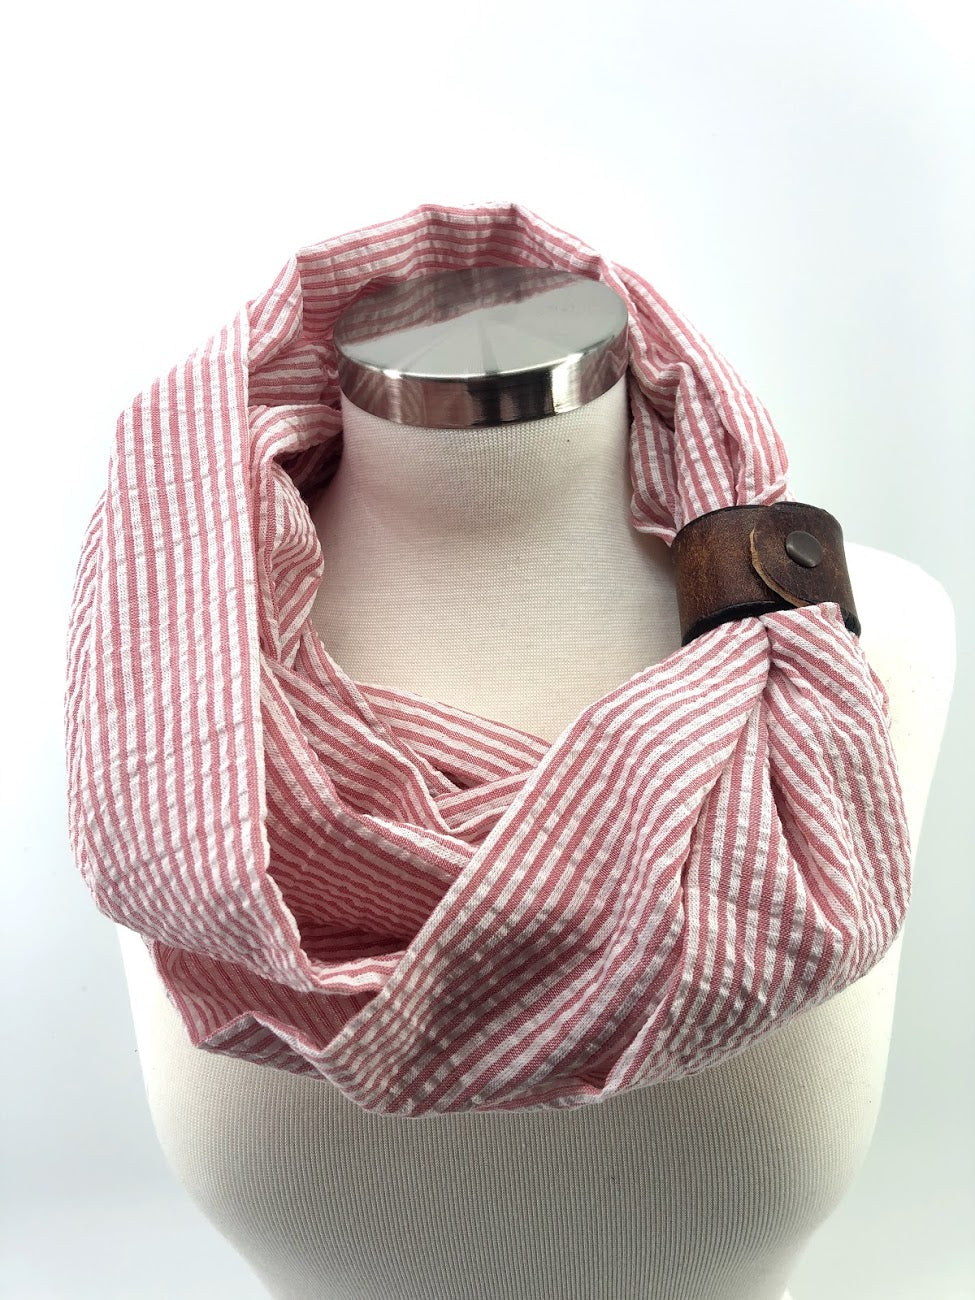 Bermuda Red Seersucker Eternity Scarf with a Leather Cuff